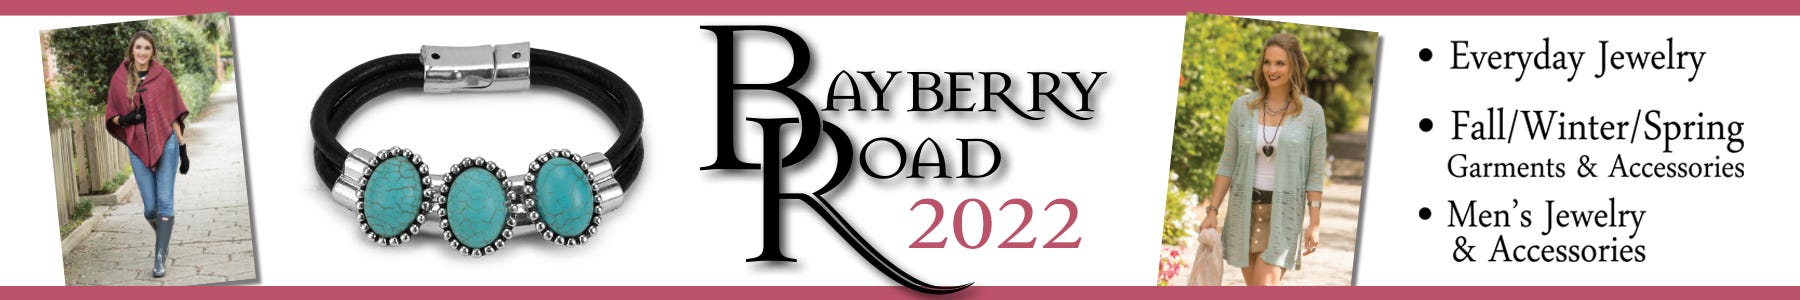 Bayberry Road